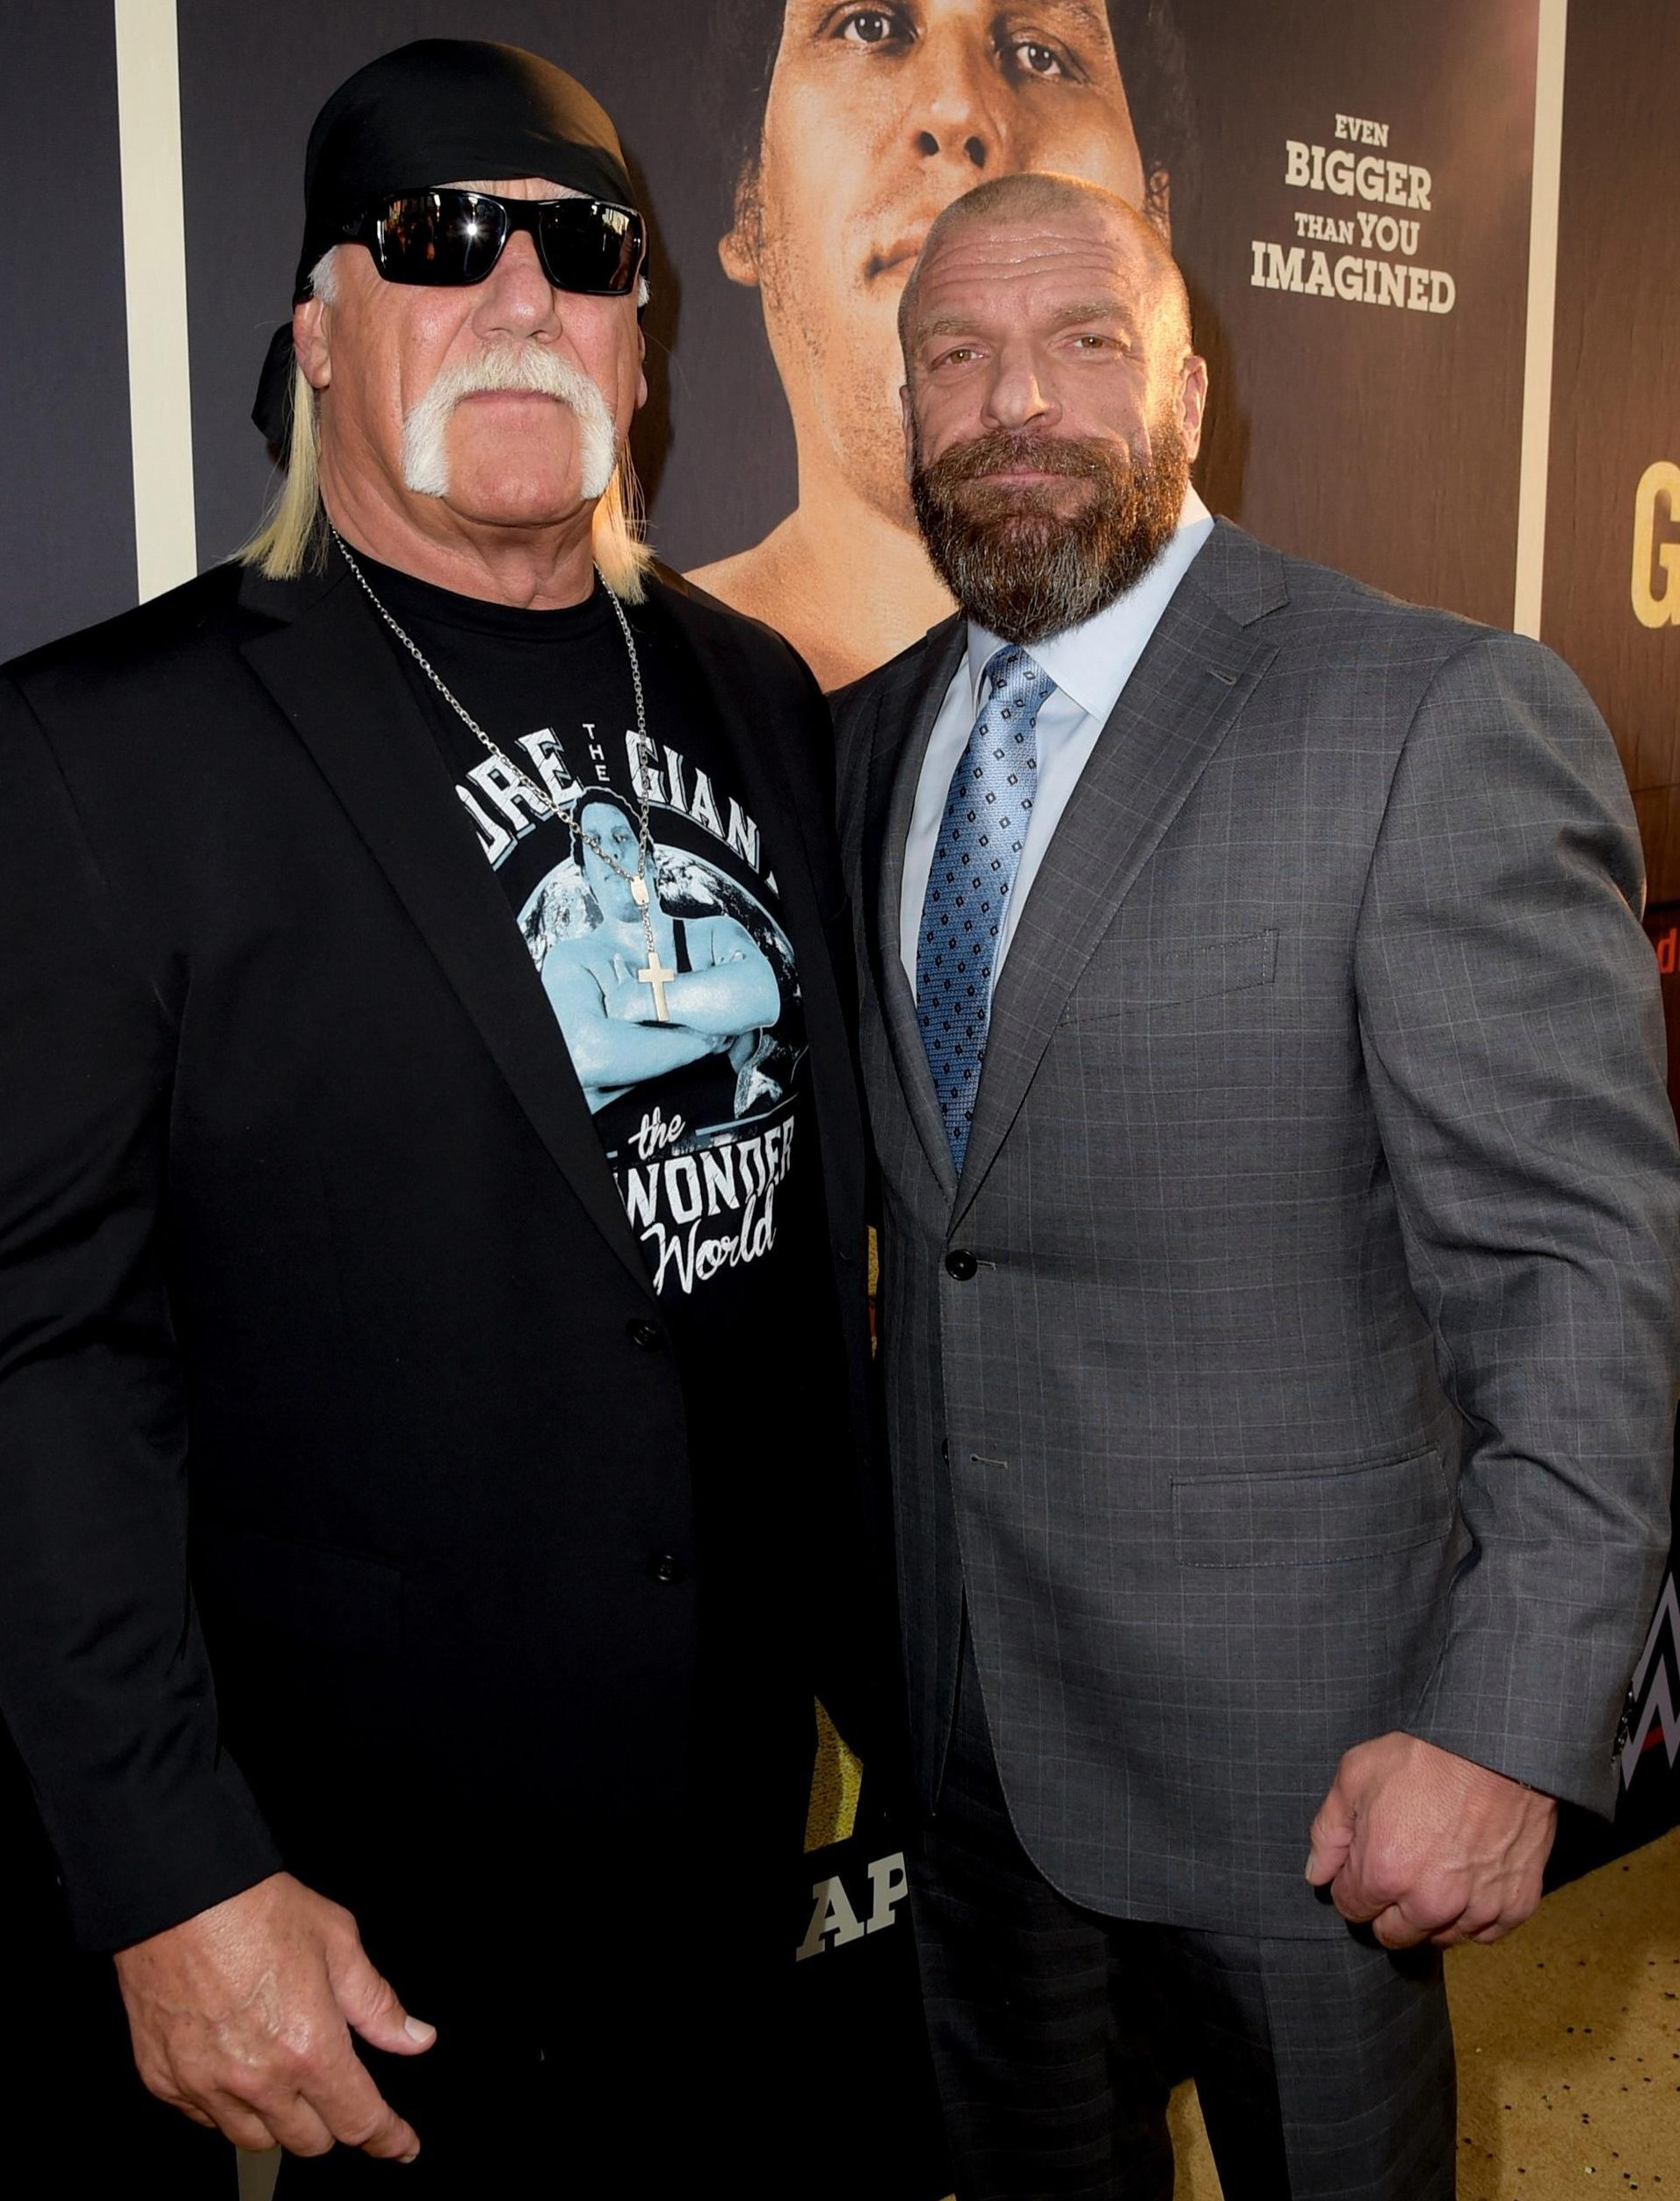 Triple H (right) with Hulk Hogan, who hosts the Crown Jewel